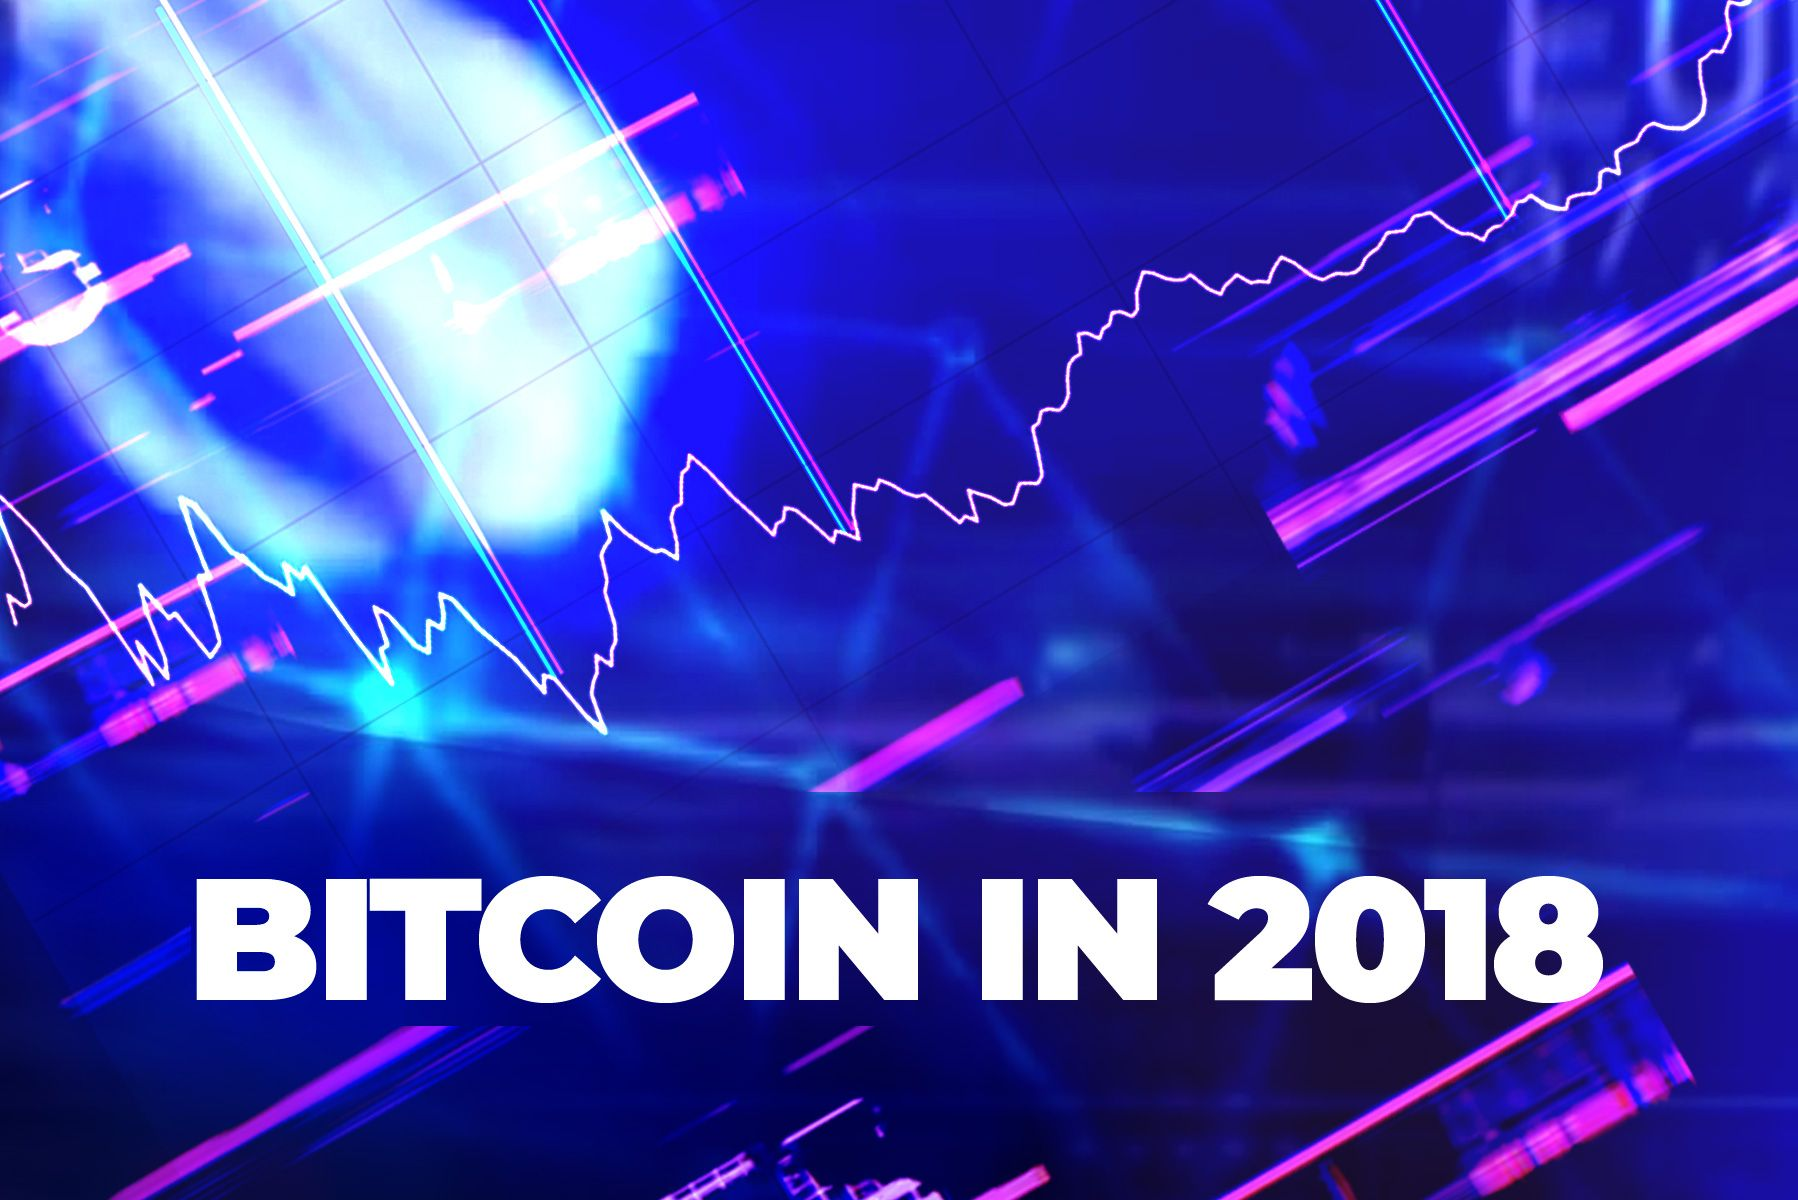 Bitcoin in 2018: forecasts and results